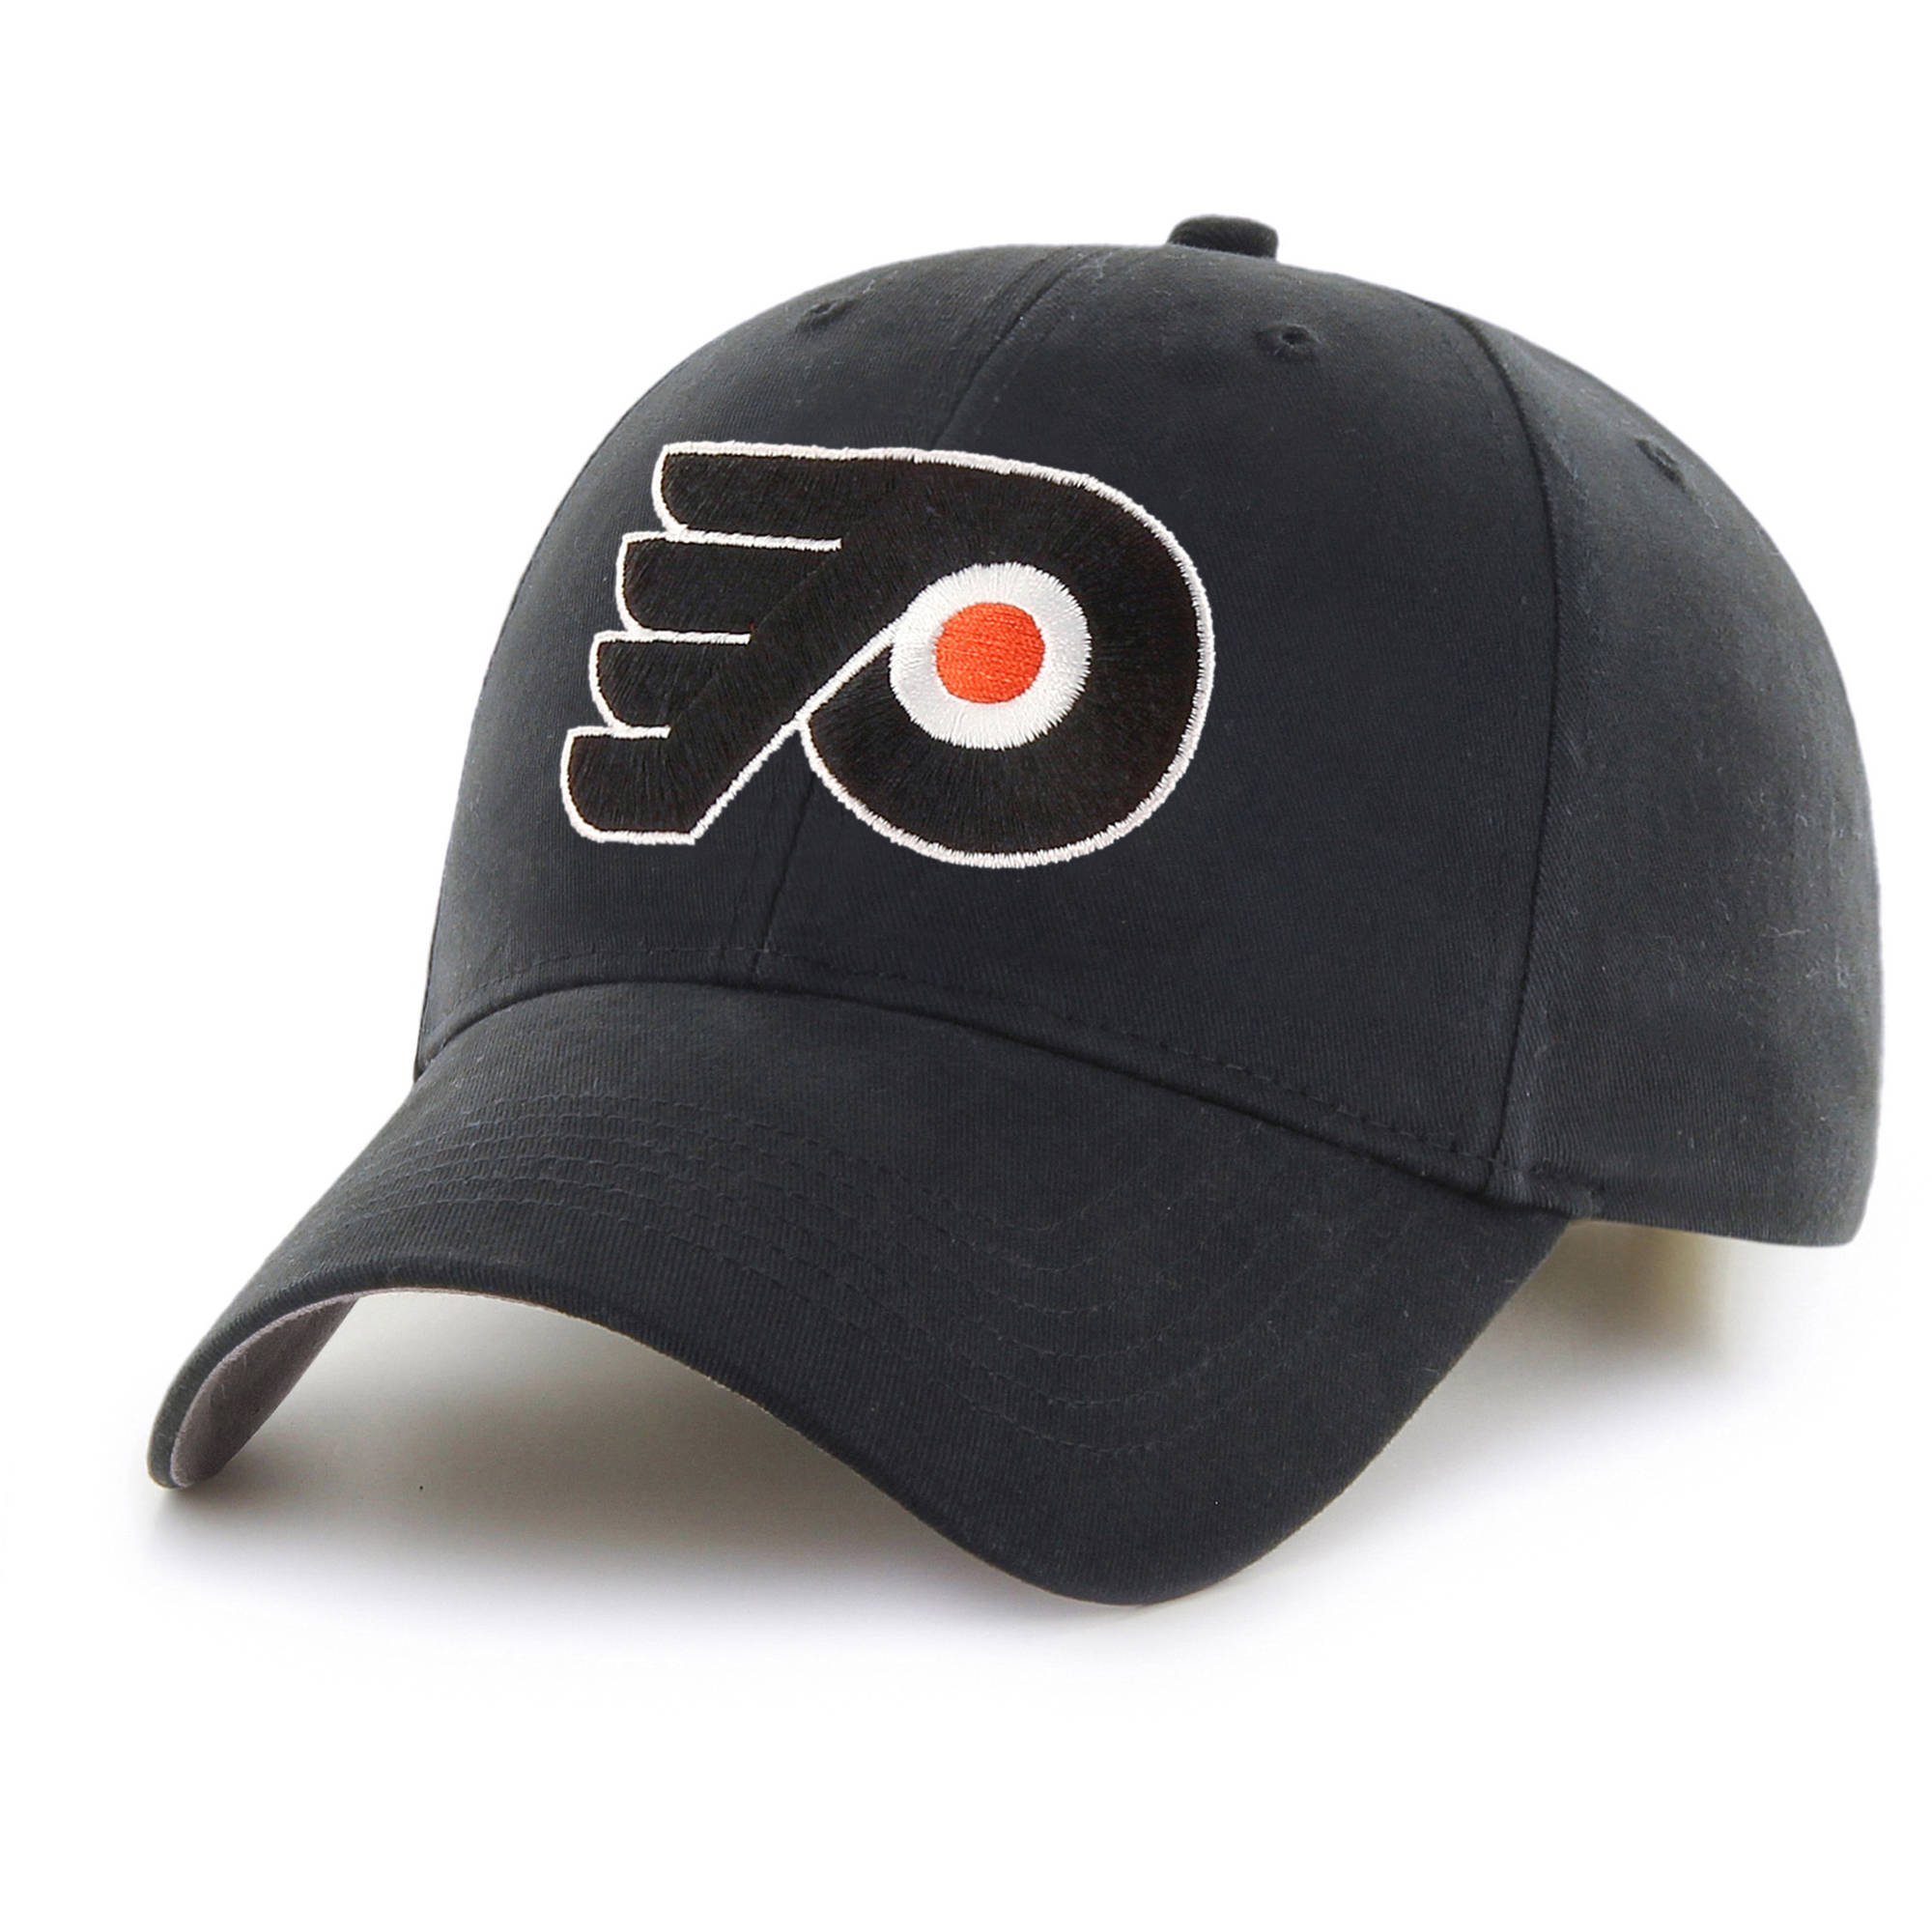 NHL Philadelphia Flyers Basic Cap / Hat by Fan Favorite